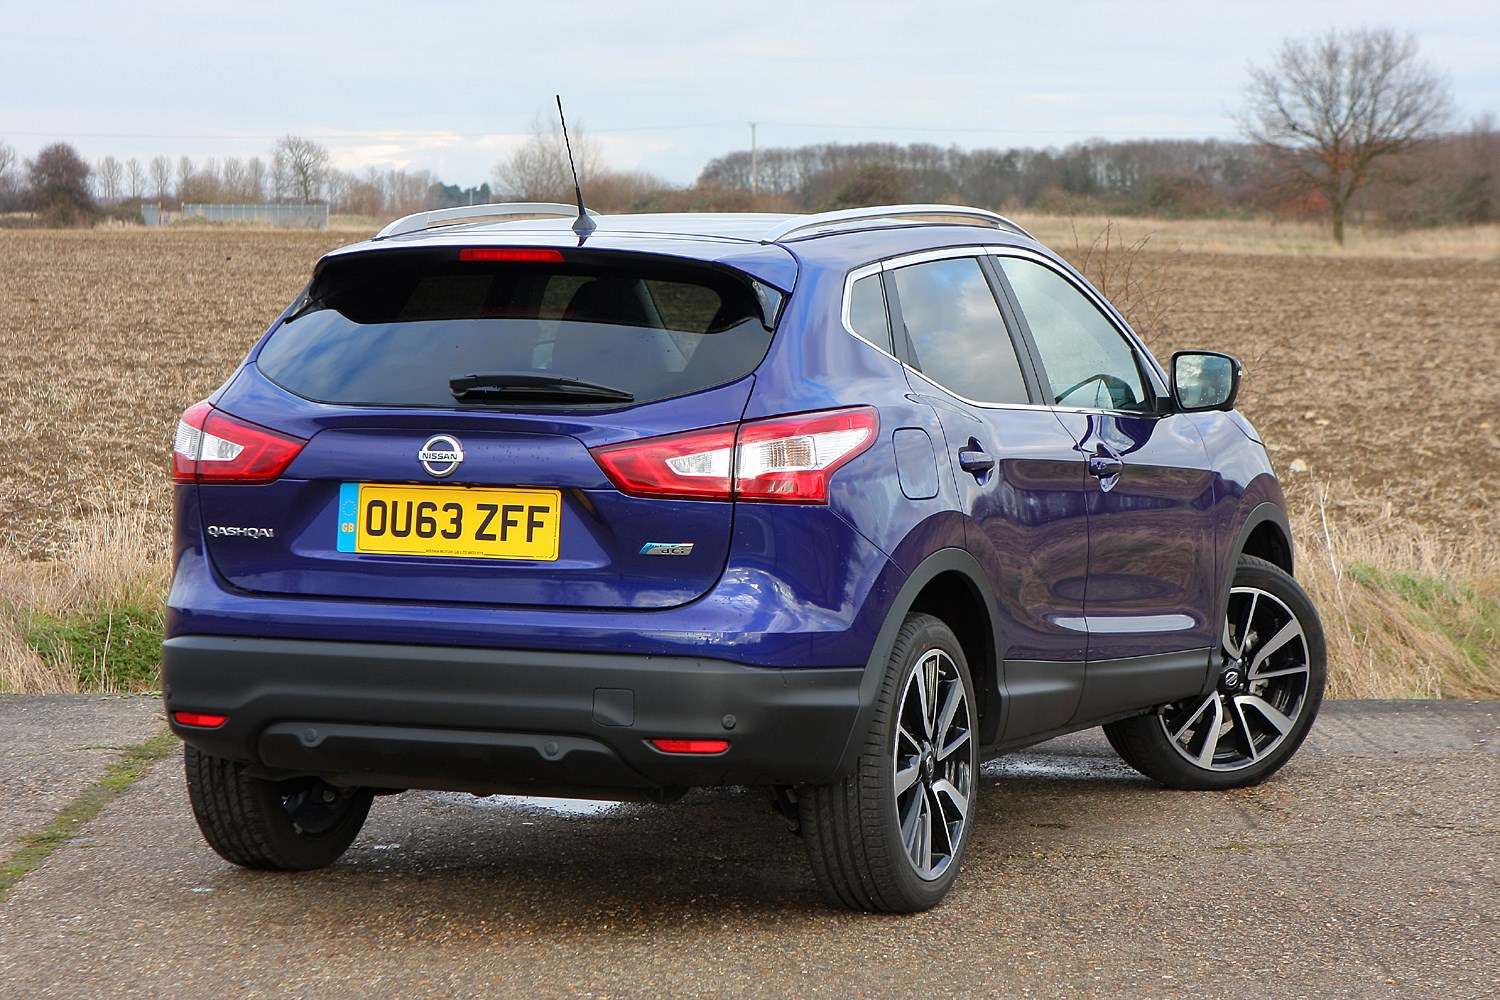 Nissan Qashqai SUV review: summary | Parkers